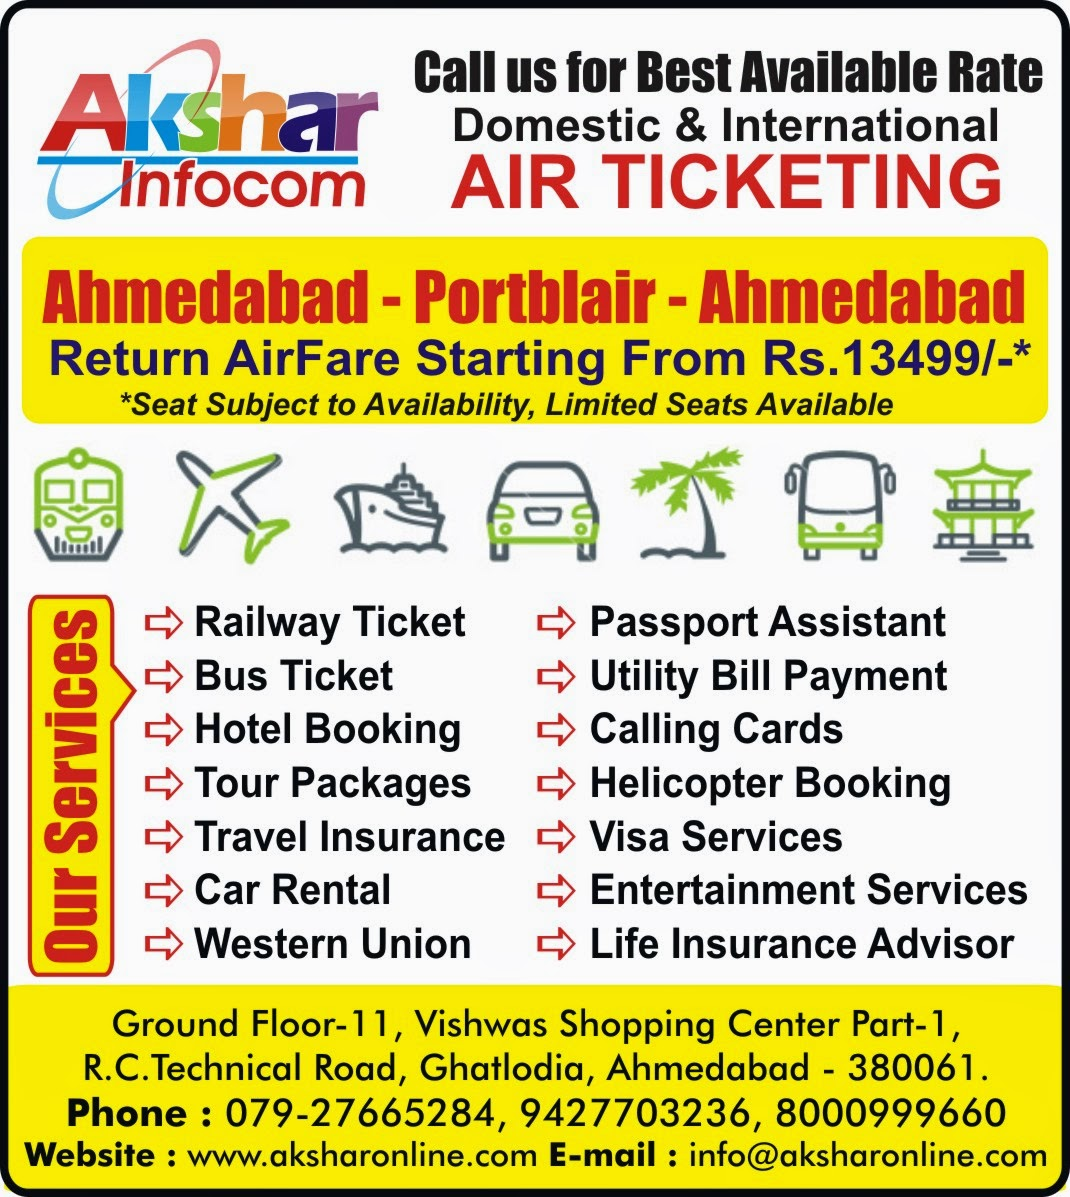 Ahmedabad - Portblair - Ahmedabad Return Airfare Including All Taxes Starting From 13499/- 5Nights/6Days Package Starting From Rs.15999/-*** Railway Ticket Booking, Domestic and International AirTicketing, Hotel Booking, Tour Packages, Passport Services, Calling Cards, Bus Ticketing, Hotel Booking